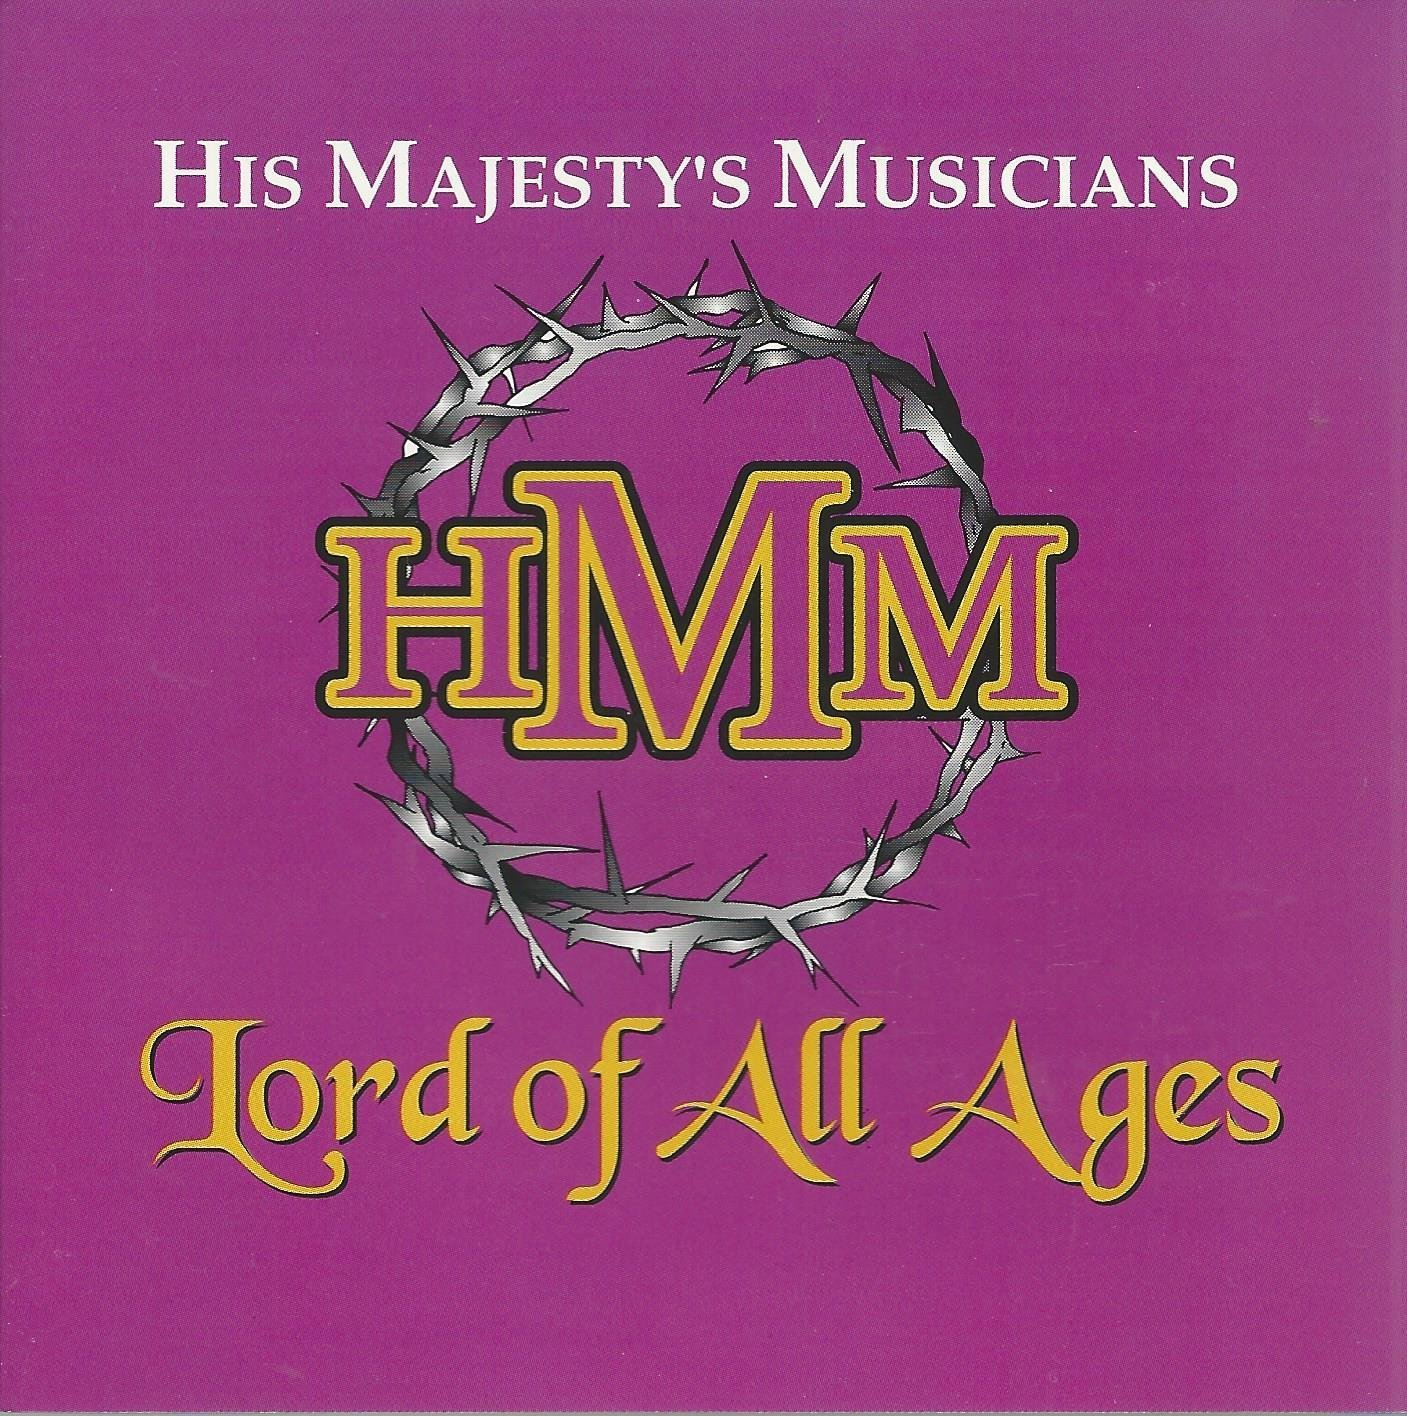 Lord of all ages by his majesty s musicians